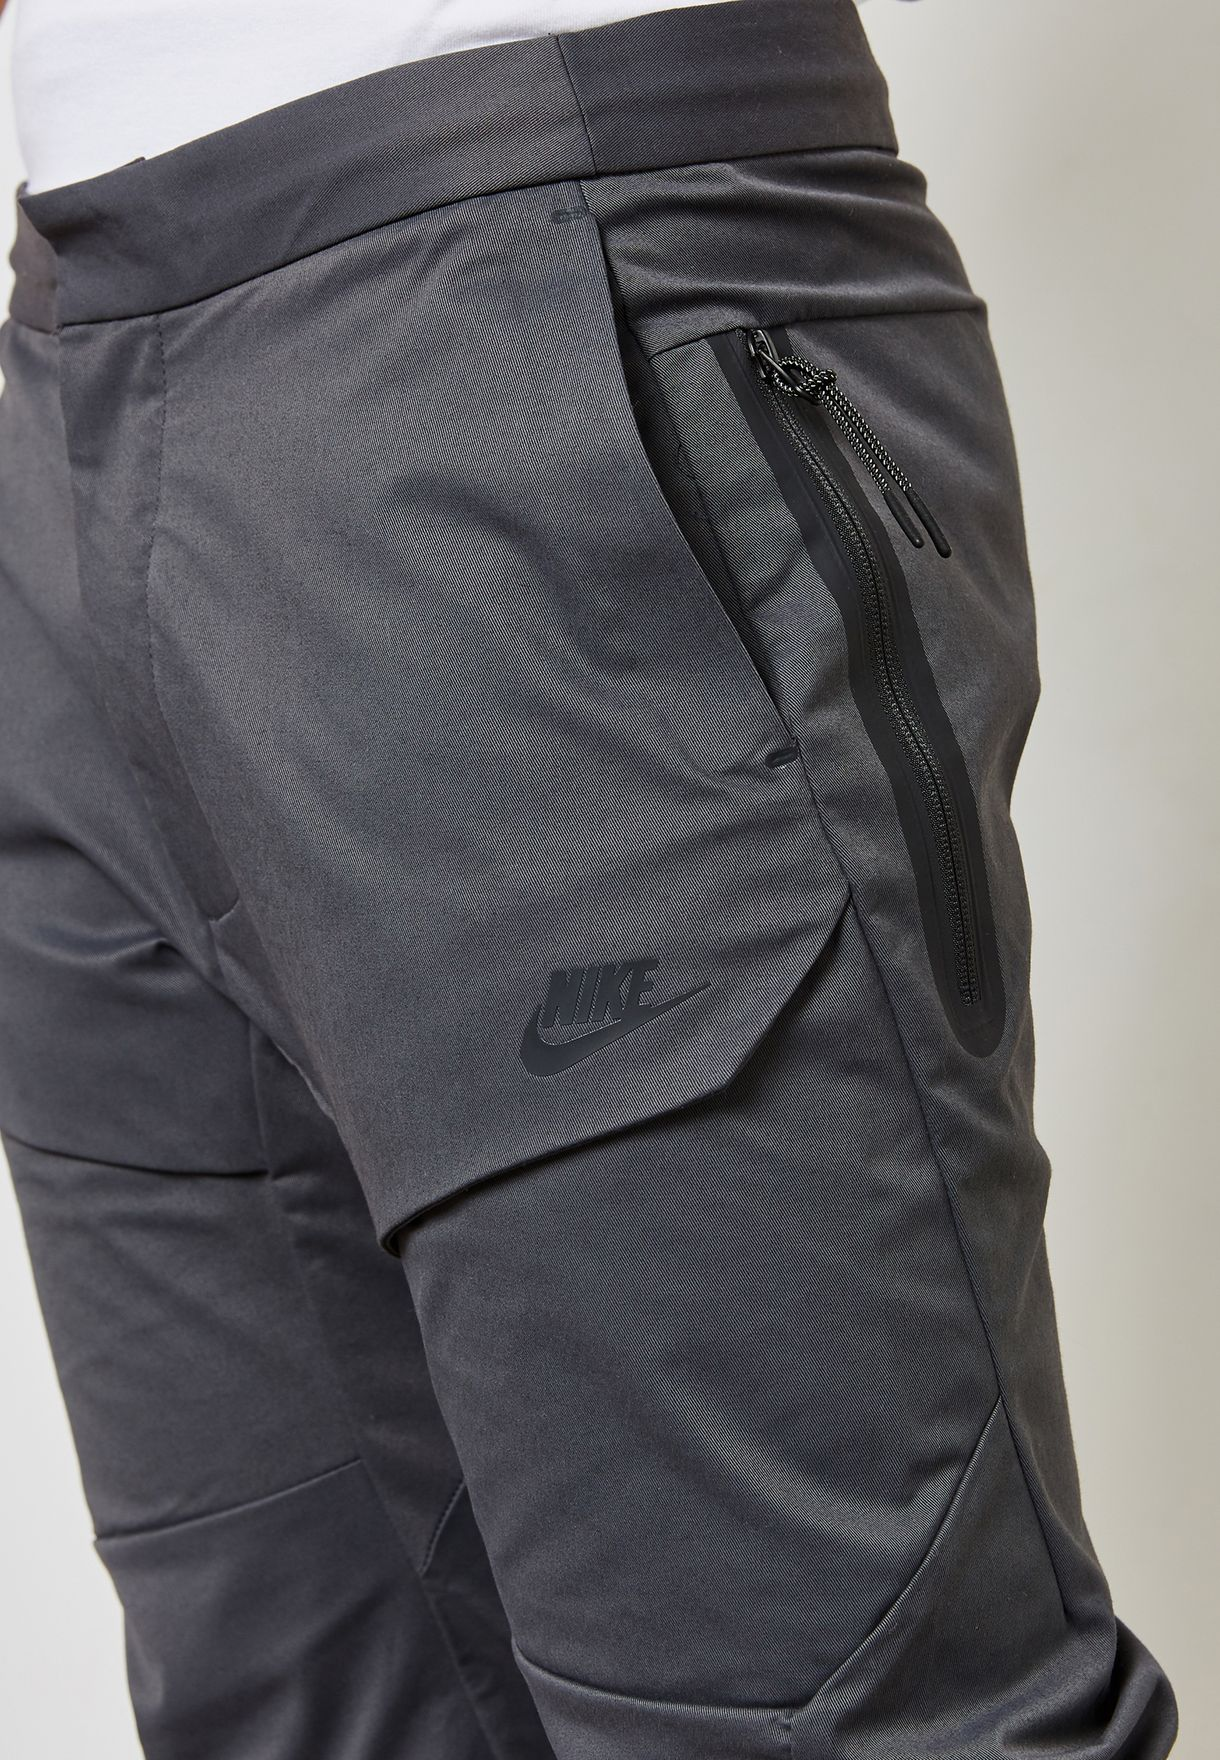 NSW Tech Cargo Pants